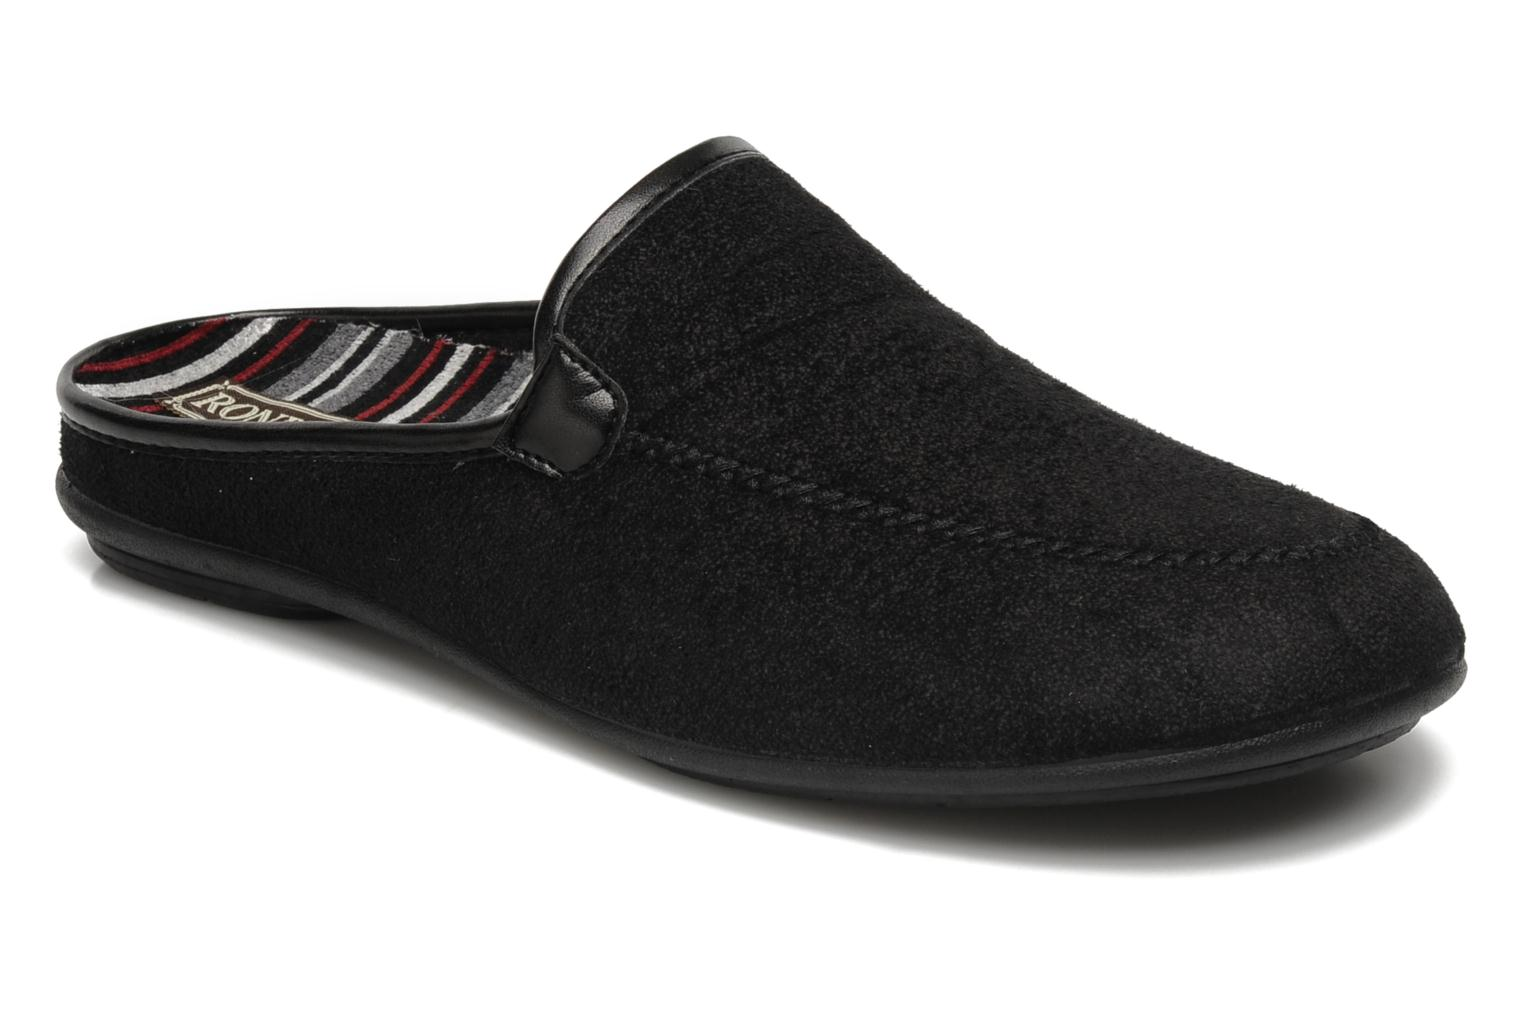 Marques Chaussure homme Rondinaud homme Loue Marine